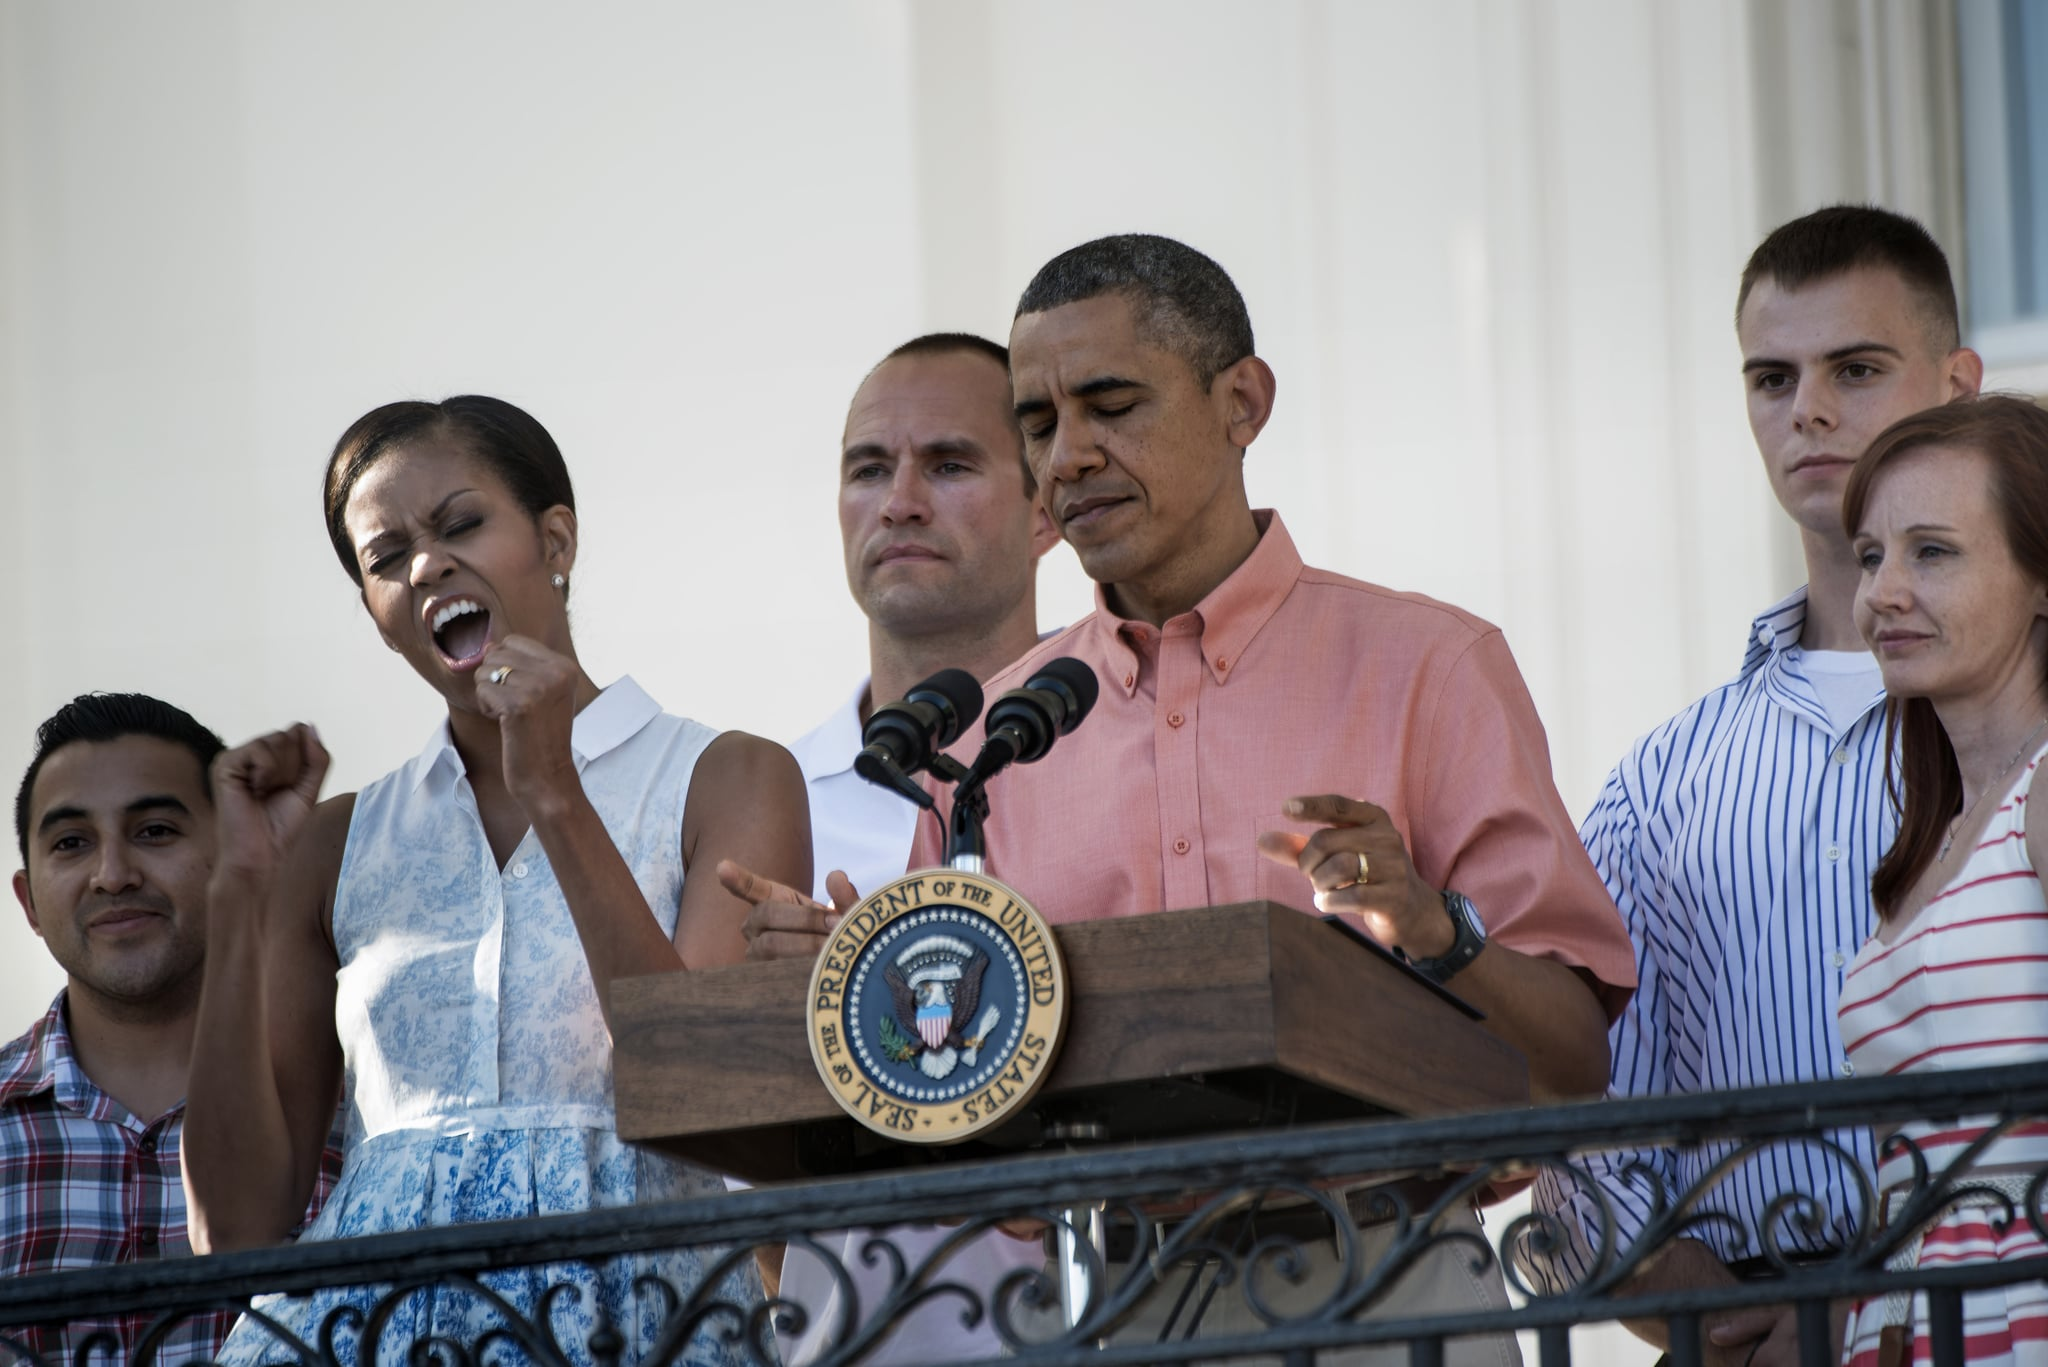 Michelle Obama cheered while President Obama addressed members of the military and their families at the 2013 White House BBQ.